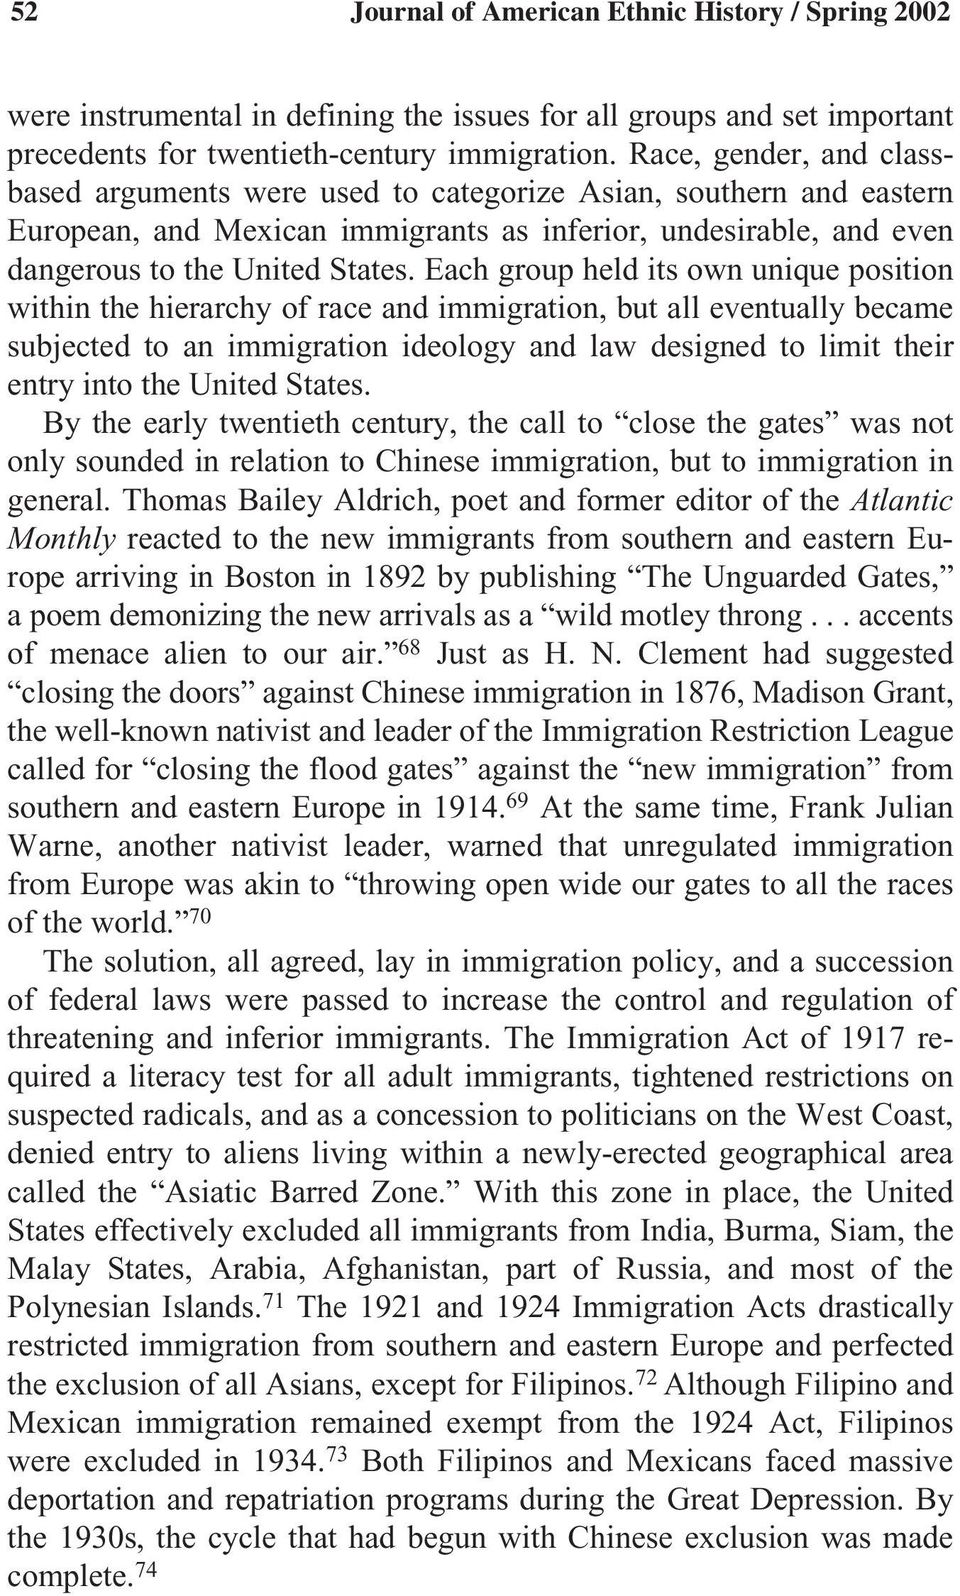 Each group held its own unique position within the hierarchy of race and immigration, but all eventually became subjected to an immigration ideology and law designed to limit their entry into the